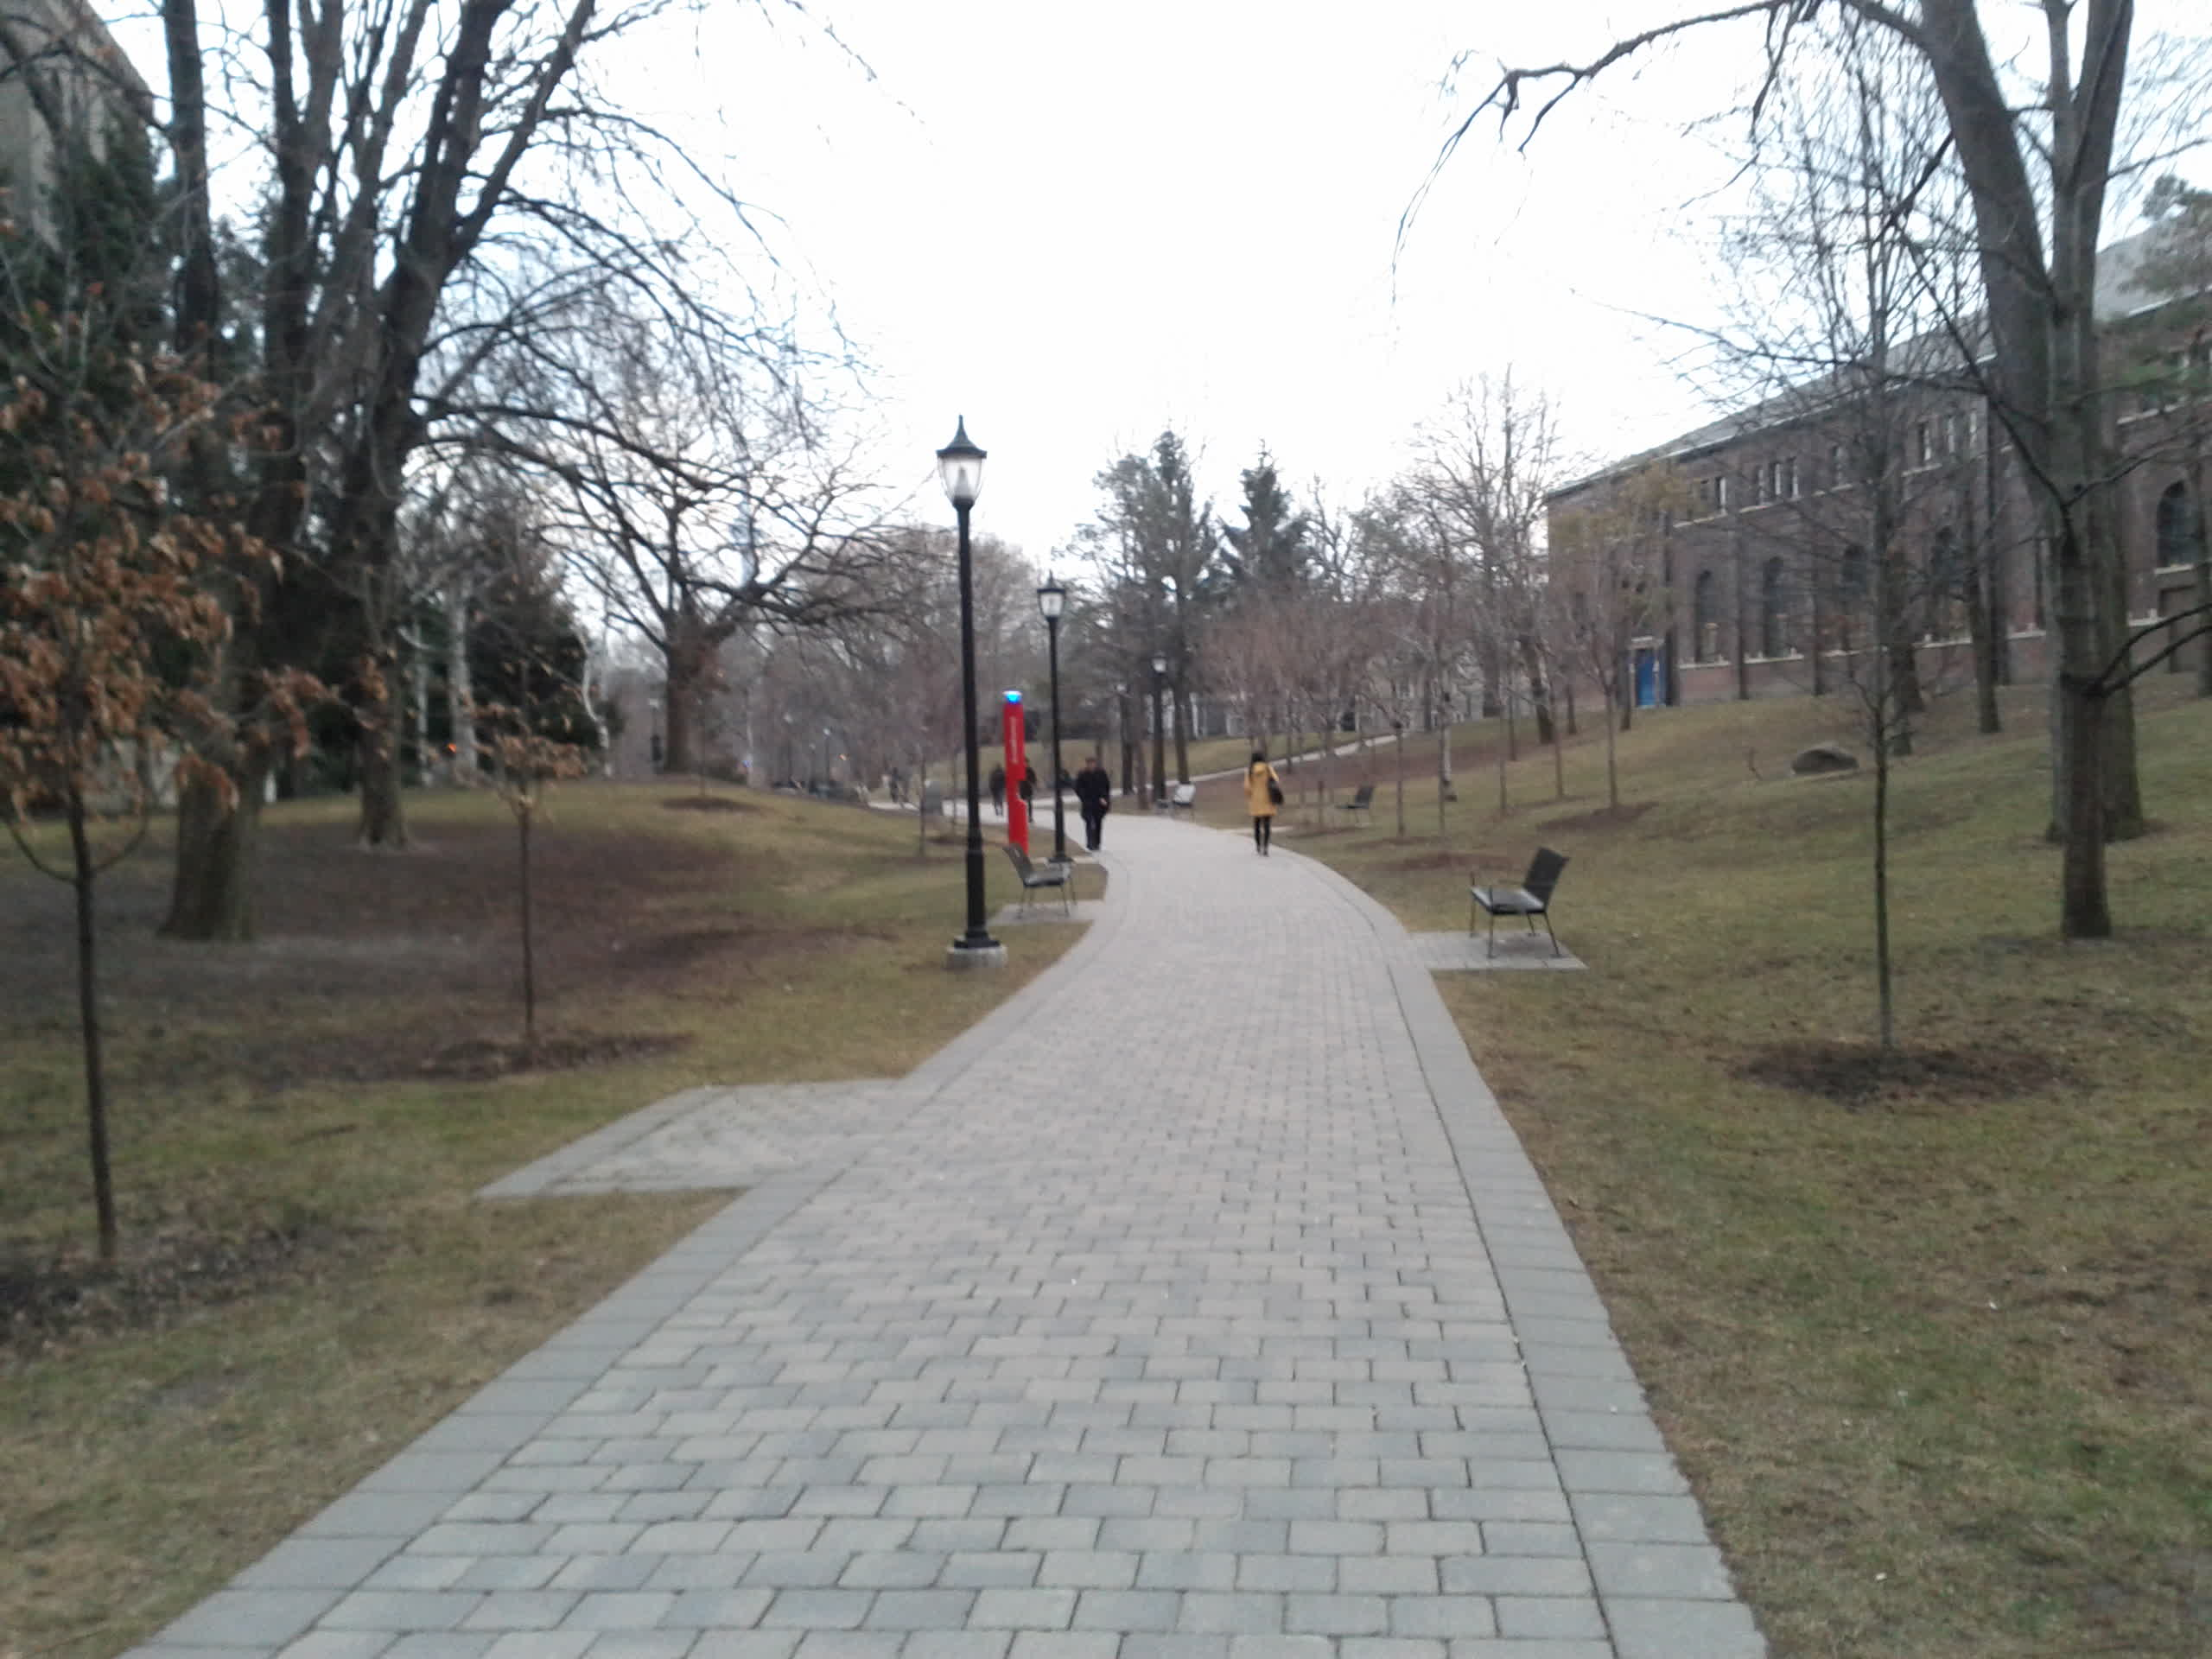 This is a scenic walkway at U of T's downtown campus. I think it's called Philosopher's Walk.